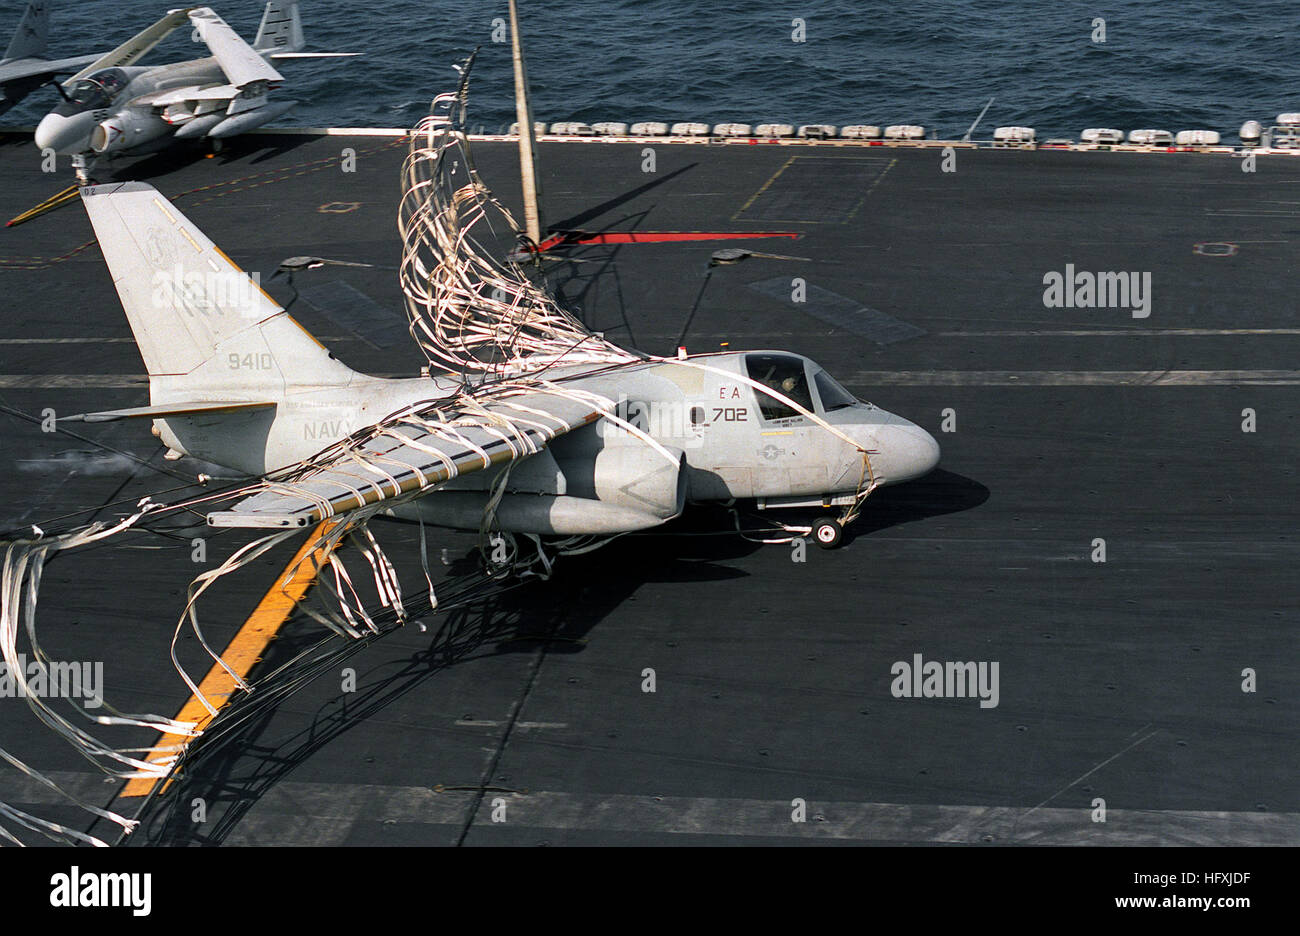 Air Anti Submarine Squadron 29 Vs 29 S 3a Stock Photos & Air Anti ...